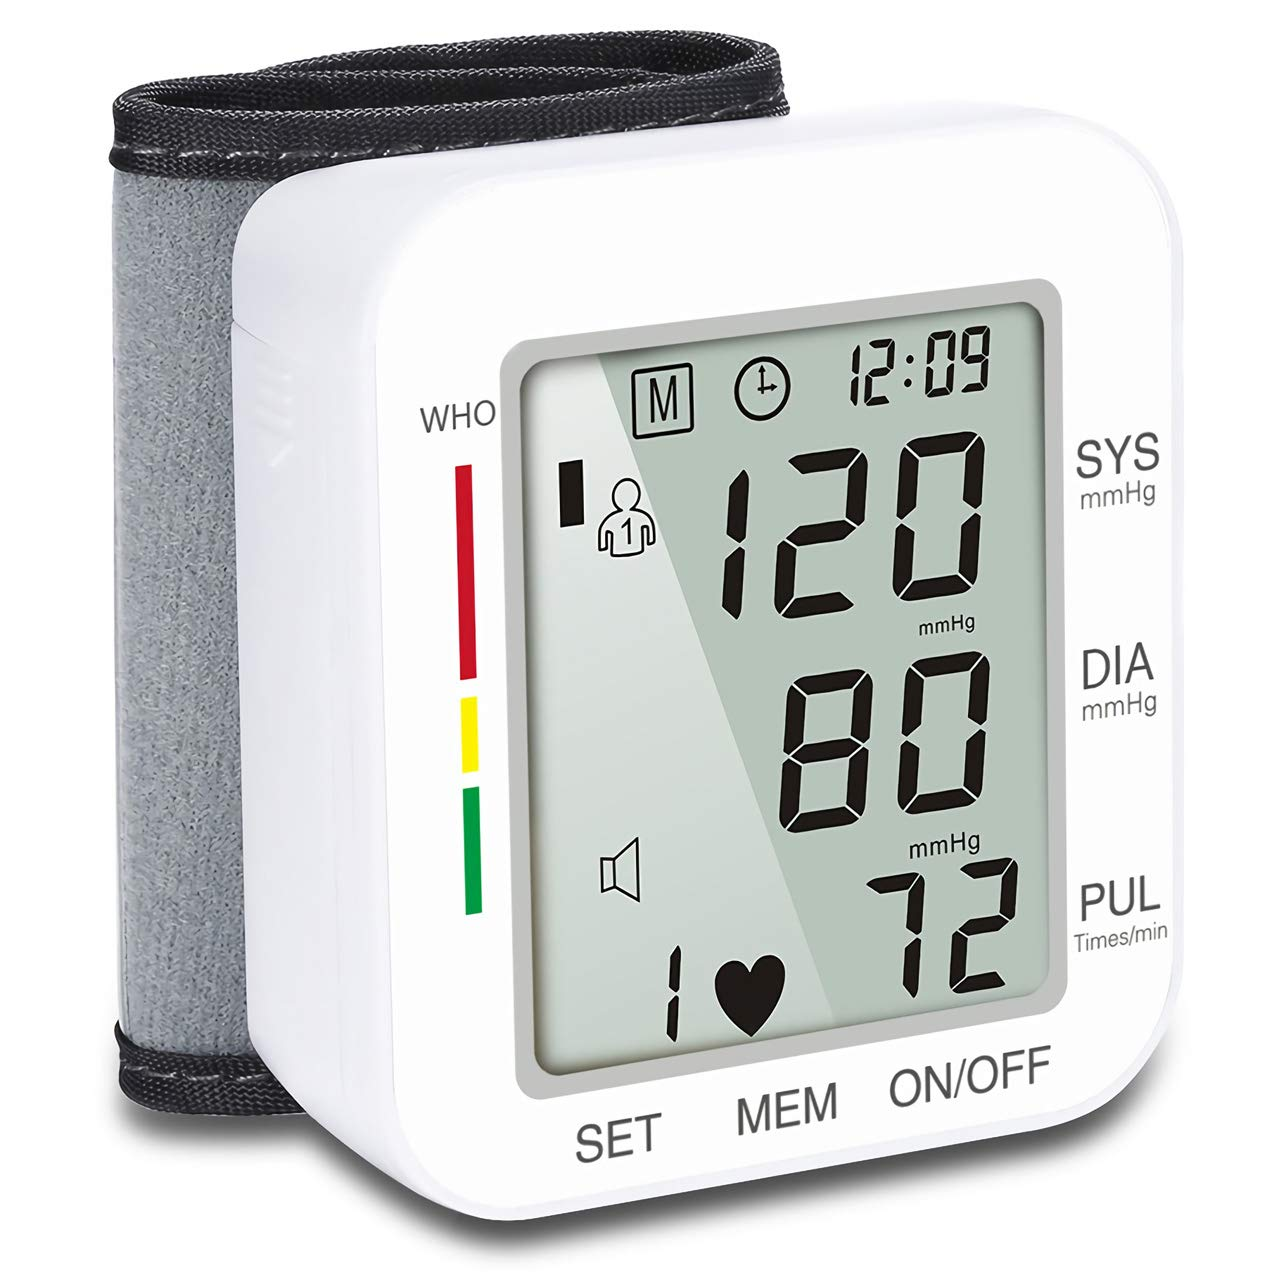 HongS Automatic Wrist Blood Pressure Cuff Monitor Health Monitor with Large LCD Screen & Voice Broadcast Irregular Heartbeat Monitor for Home Use